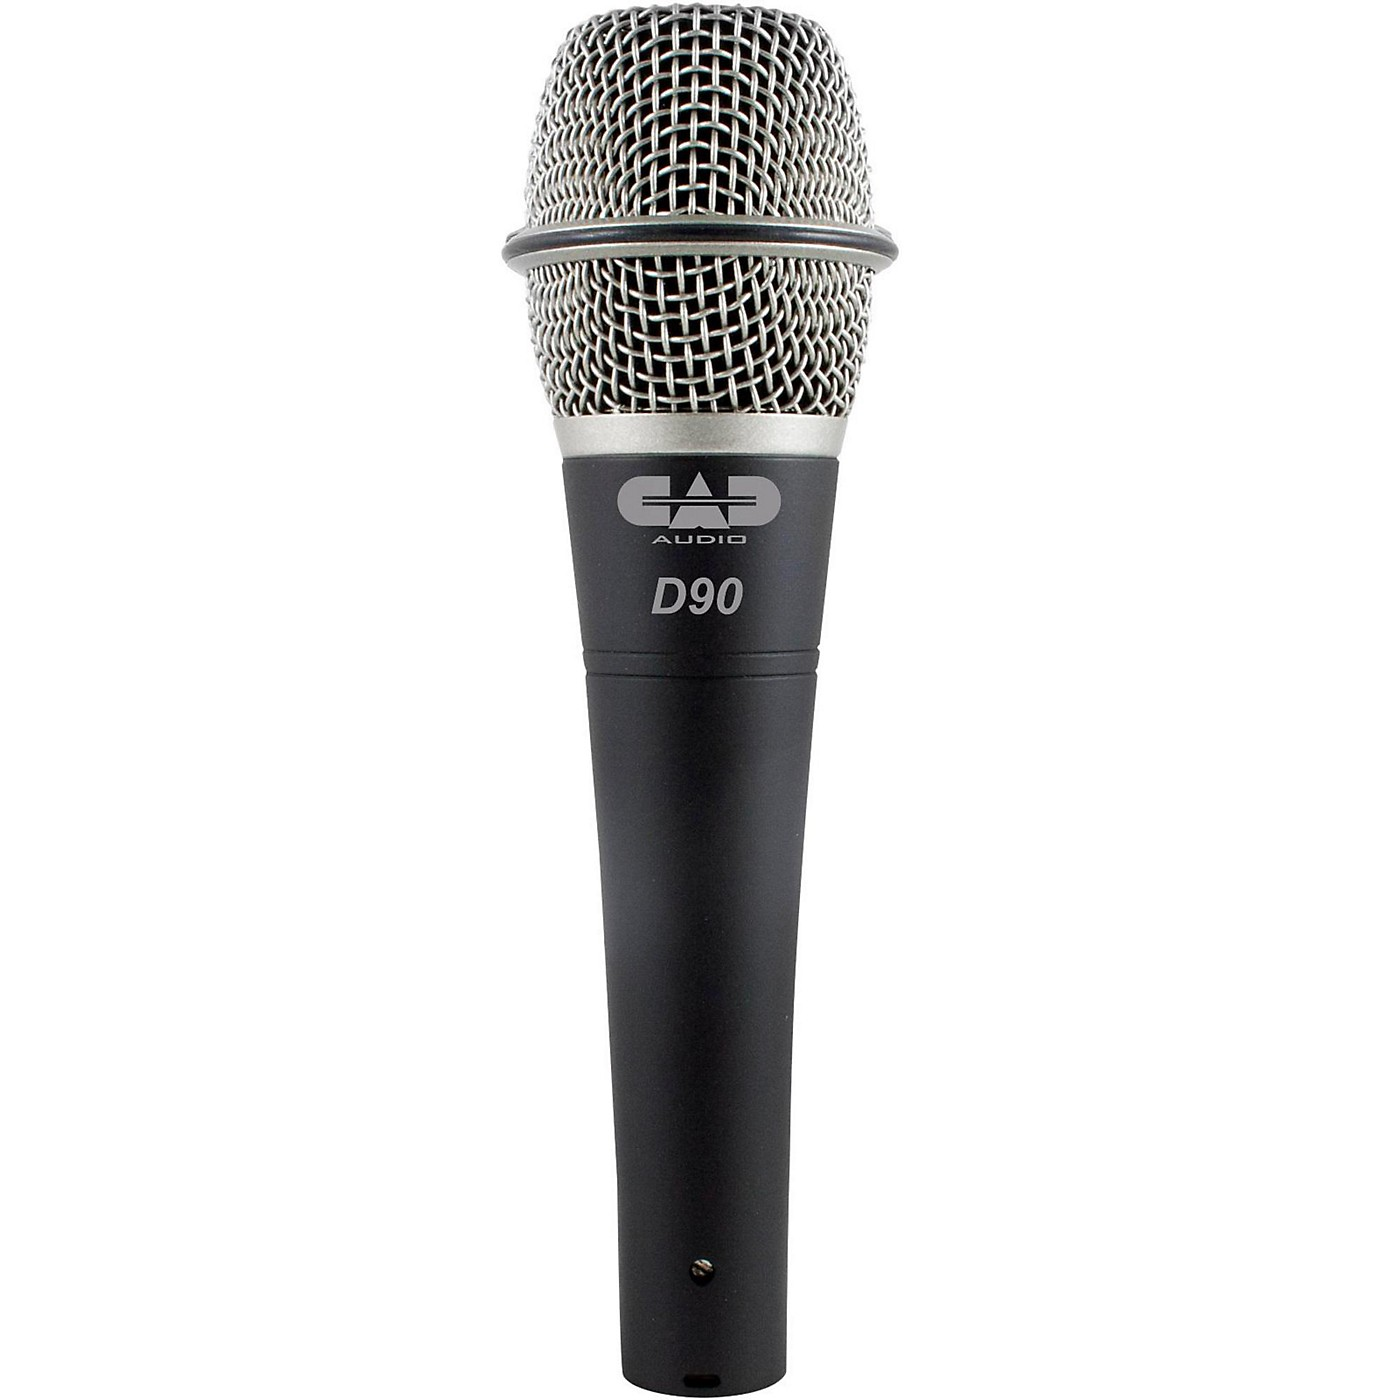 CadLive D90 Supercardioid Dynamic Handheld Microphone thumbnail